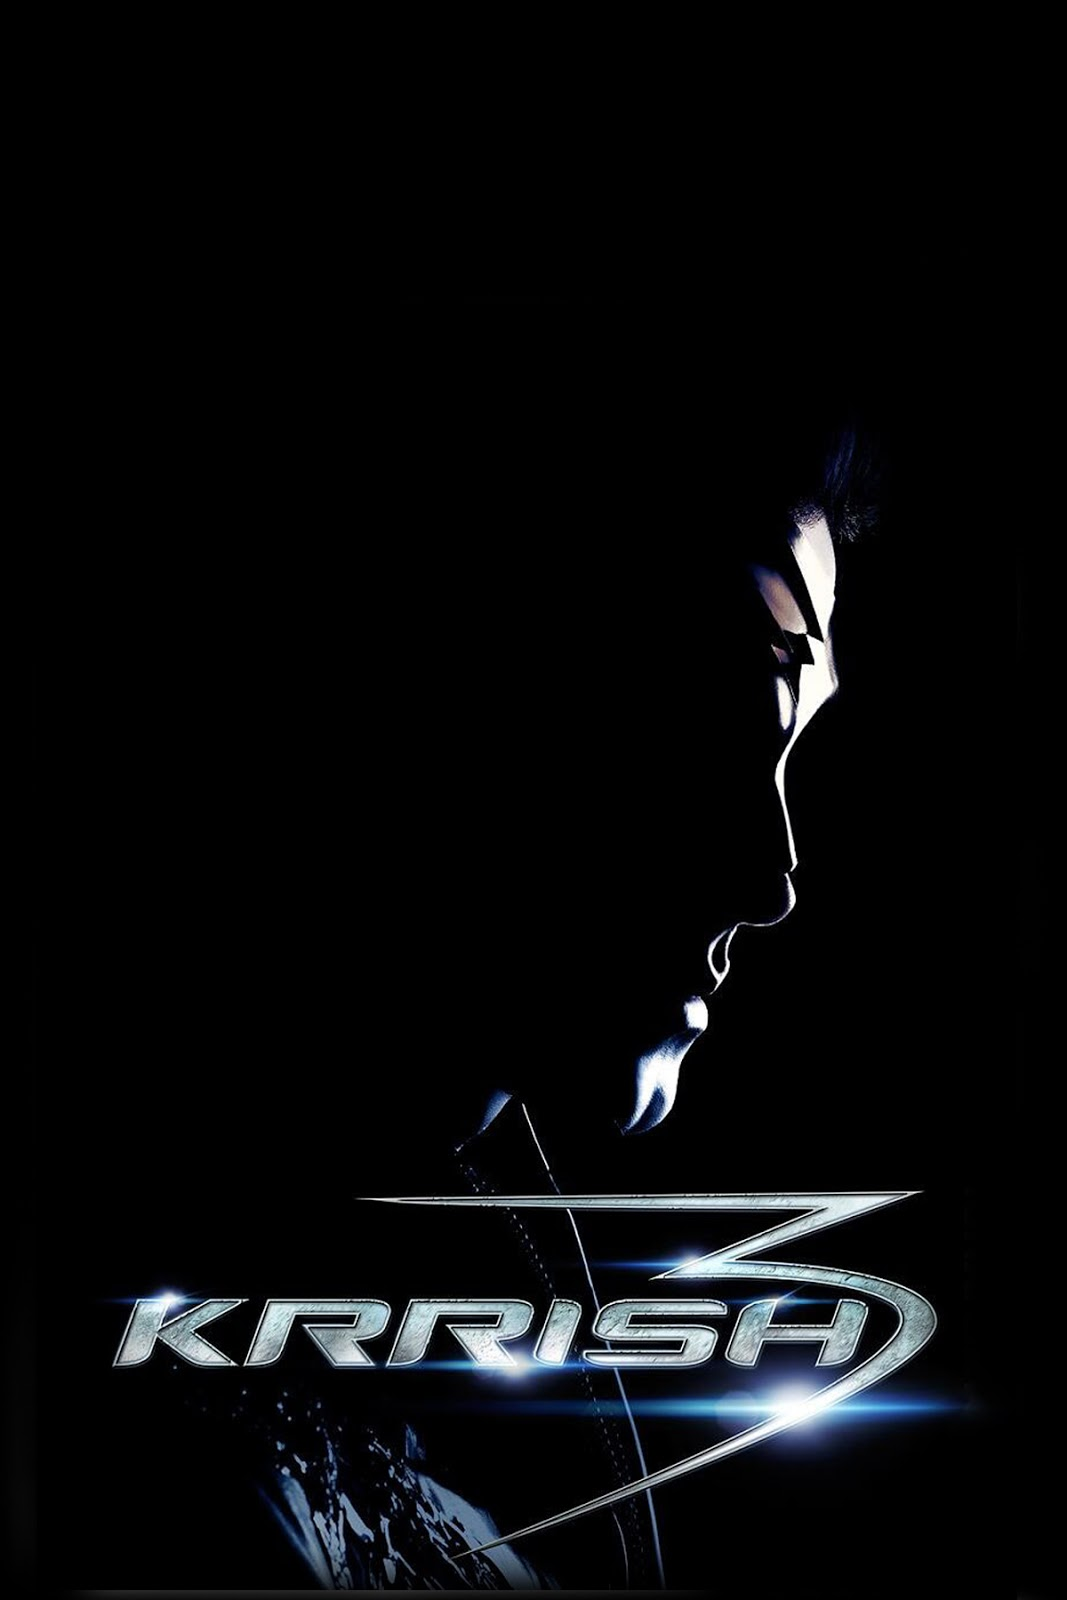 Krrish 3 Latest Hd Wallpapers 1080p